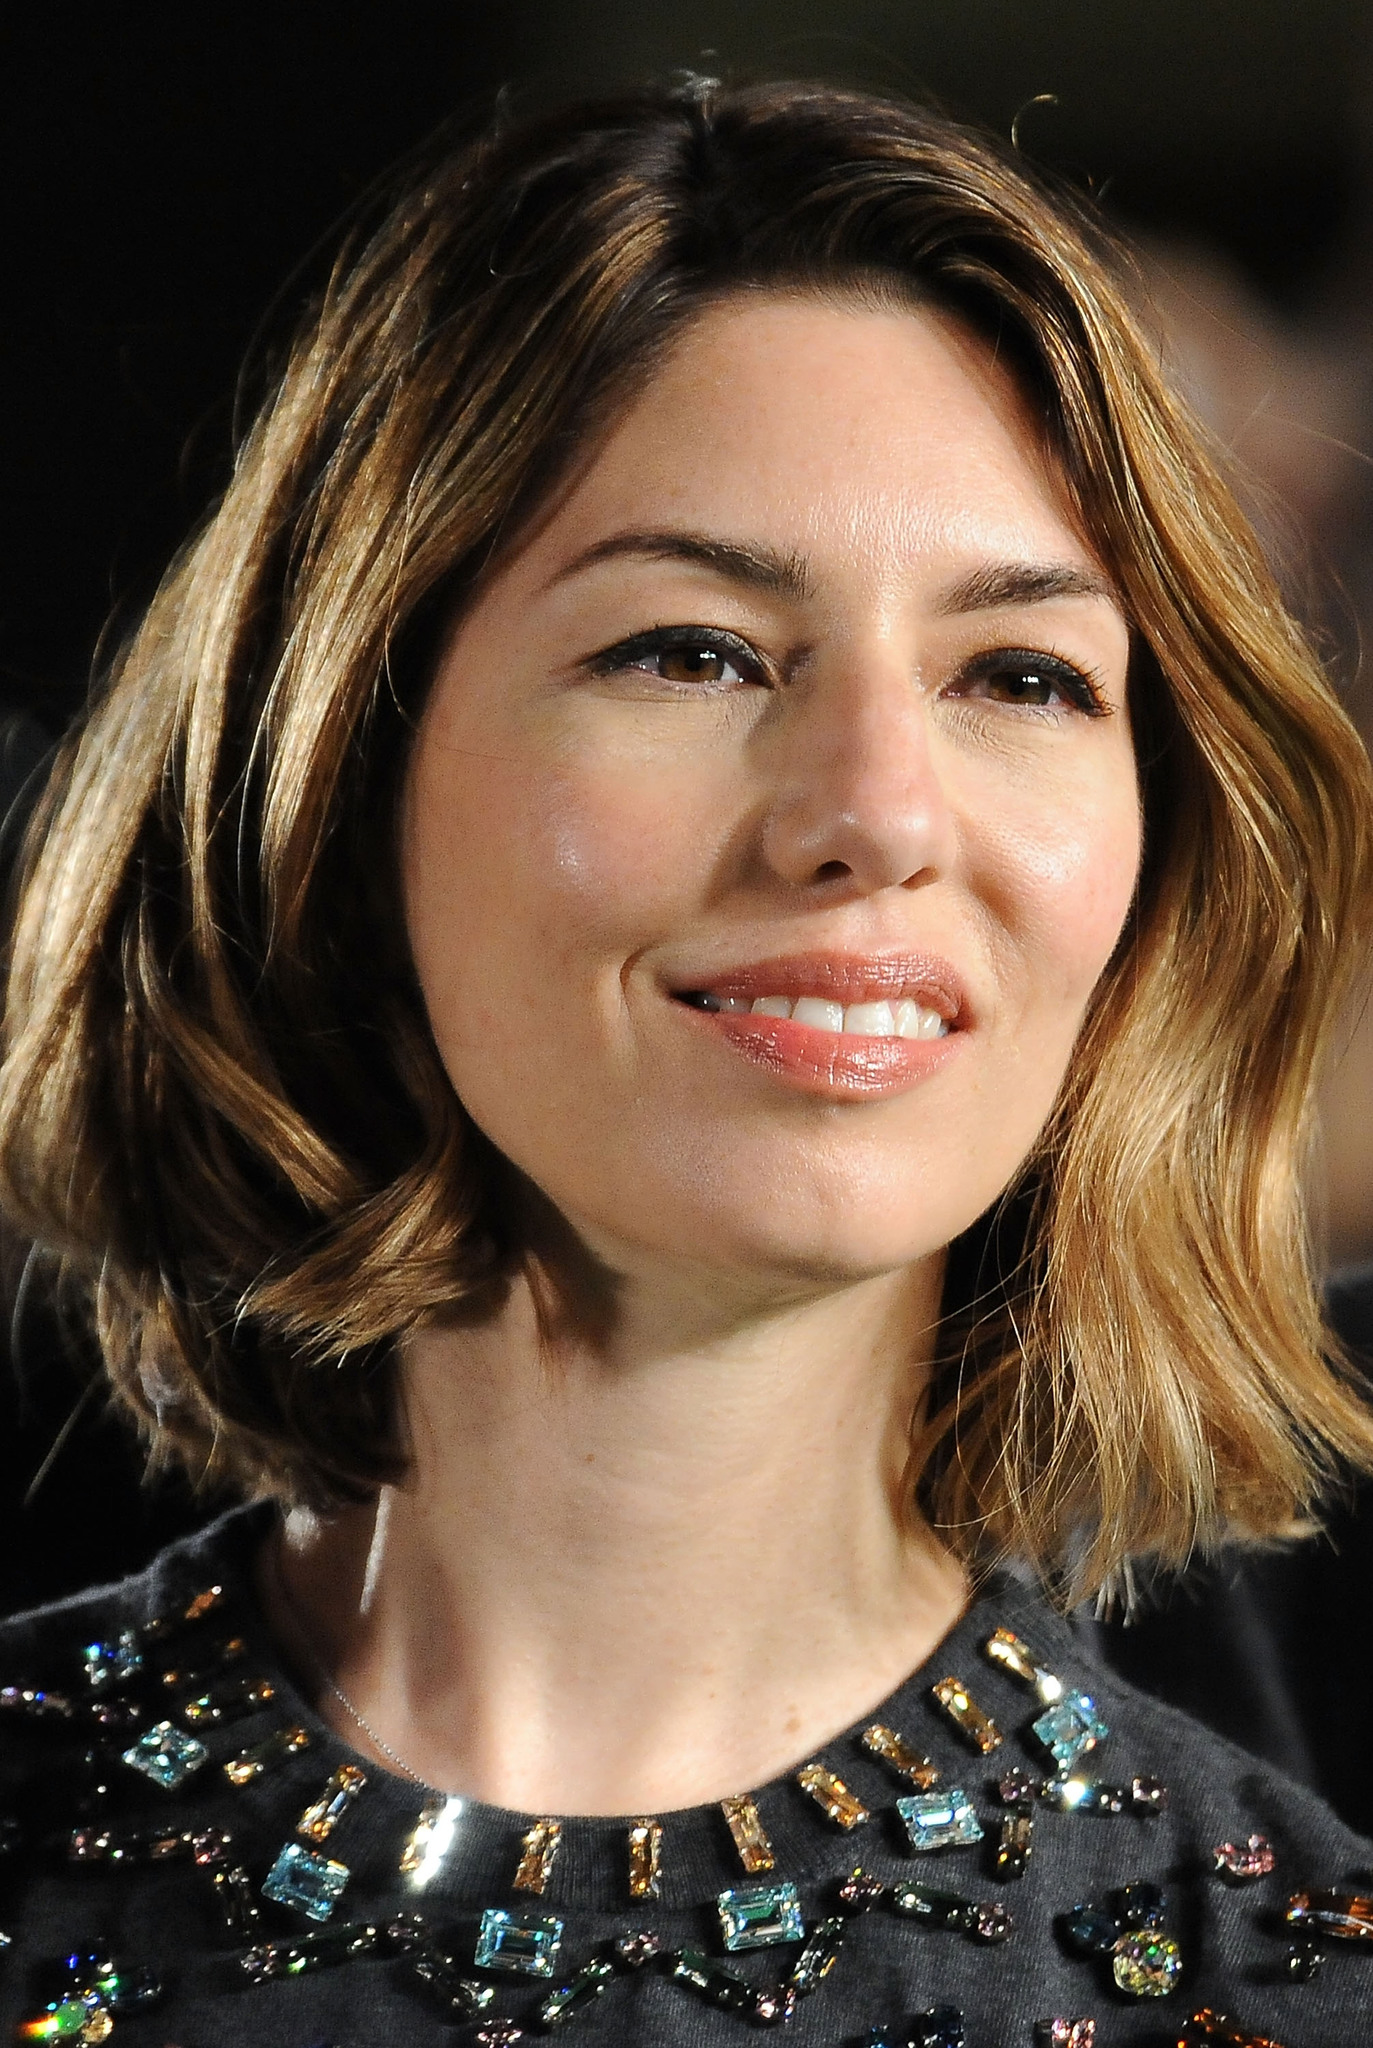 Video Sofia Coppola nudes (35 photos), Sexy, Bikini, Selfie, in bikini 2015